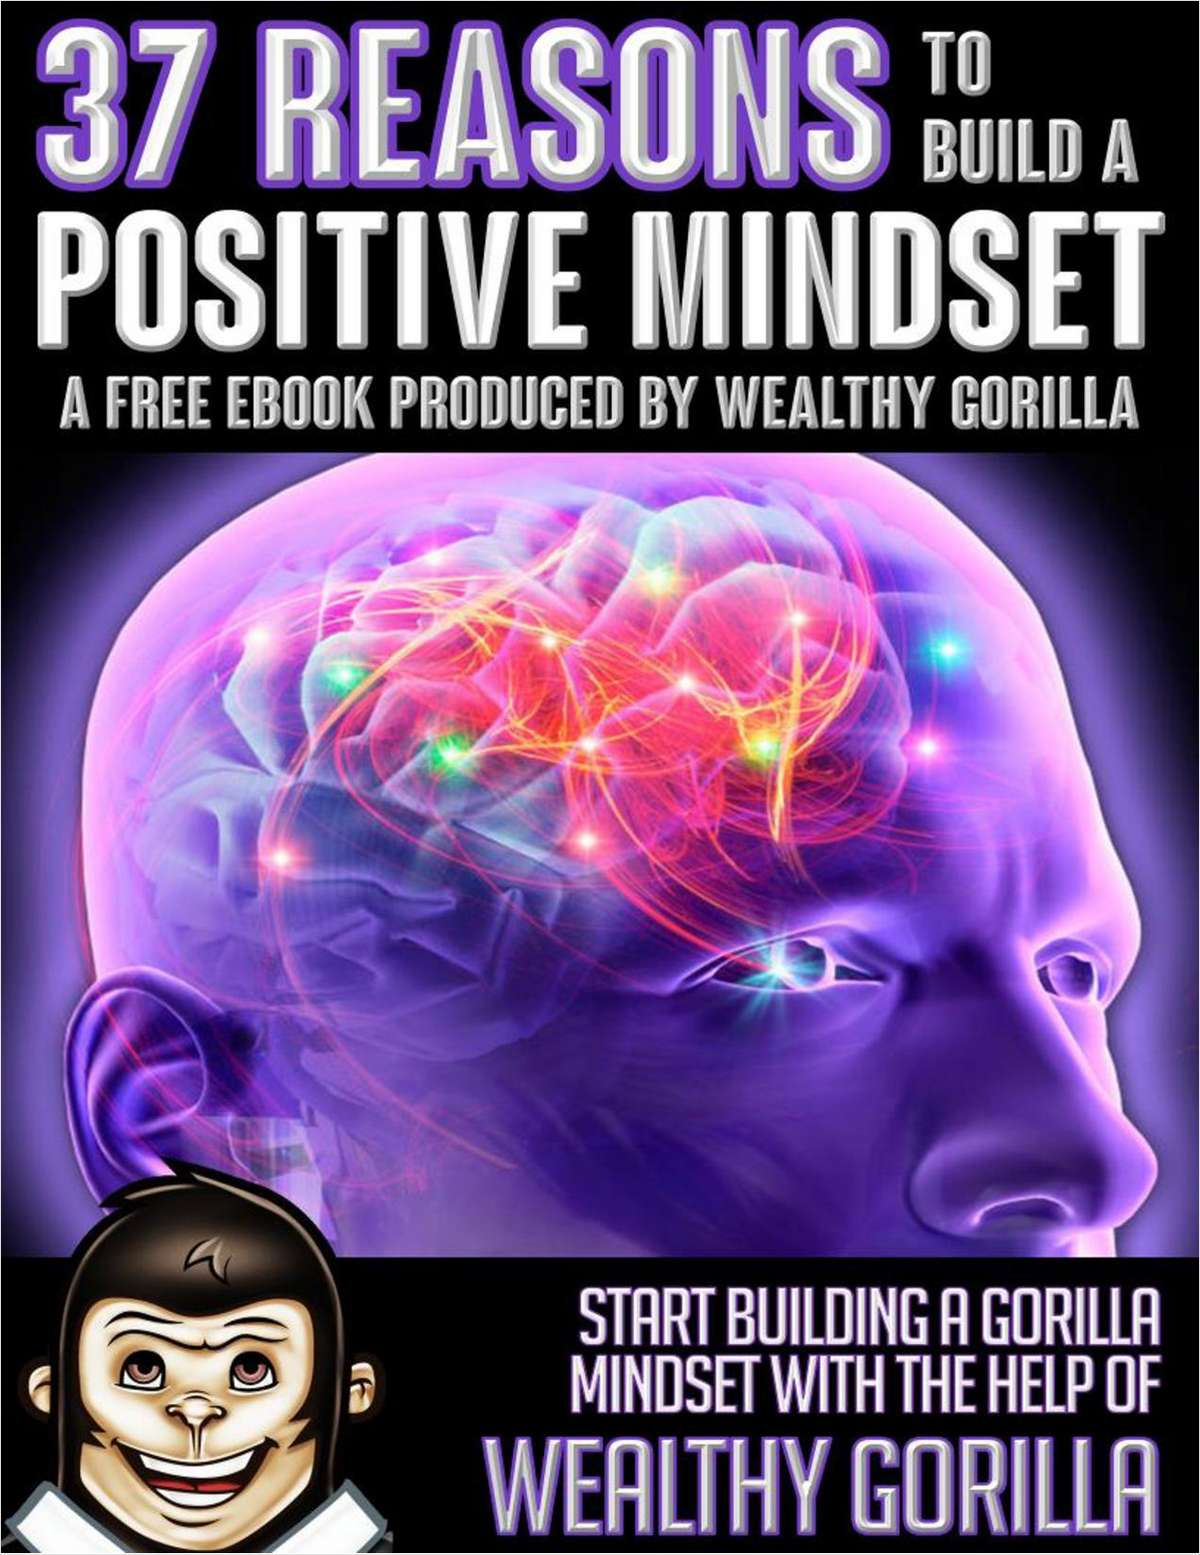 37 Reasons to Build a Positive Mindset